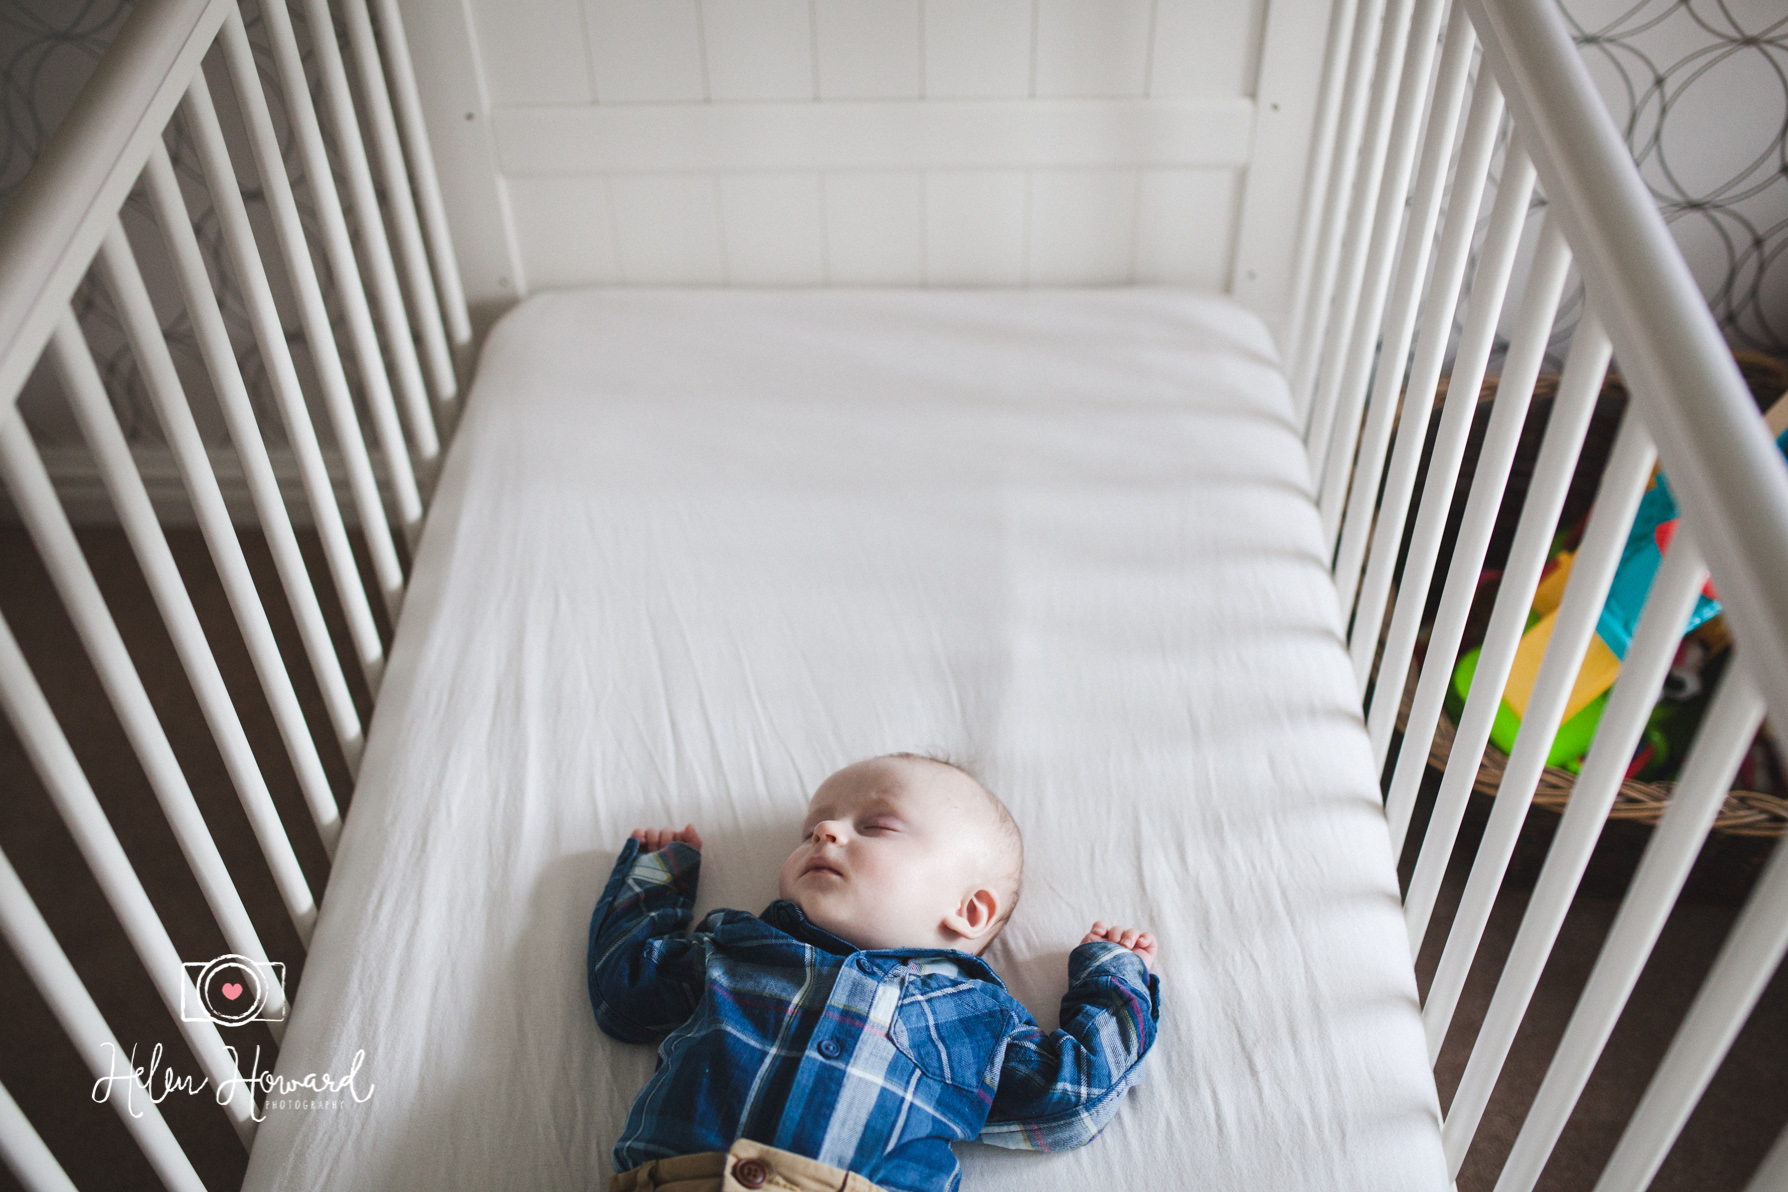 A baby boy asleep in his cot documentary family photography in Sutton Coldfield